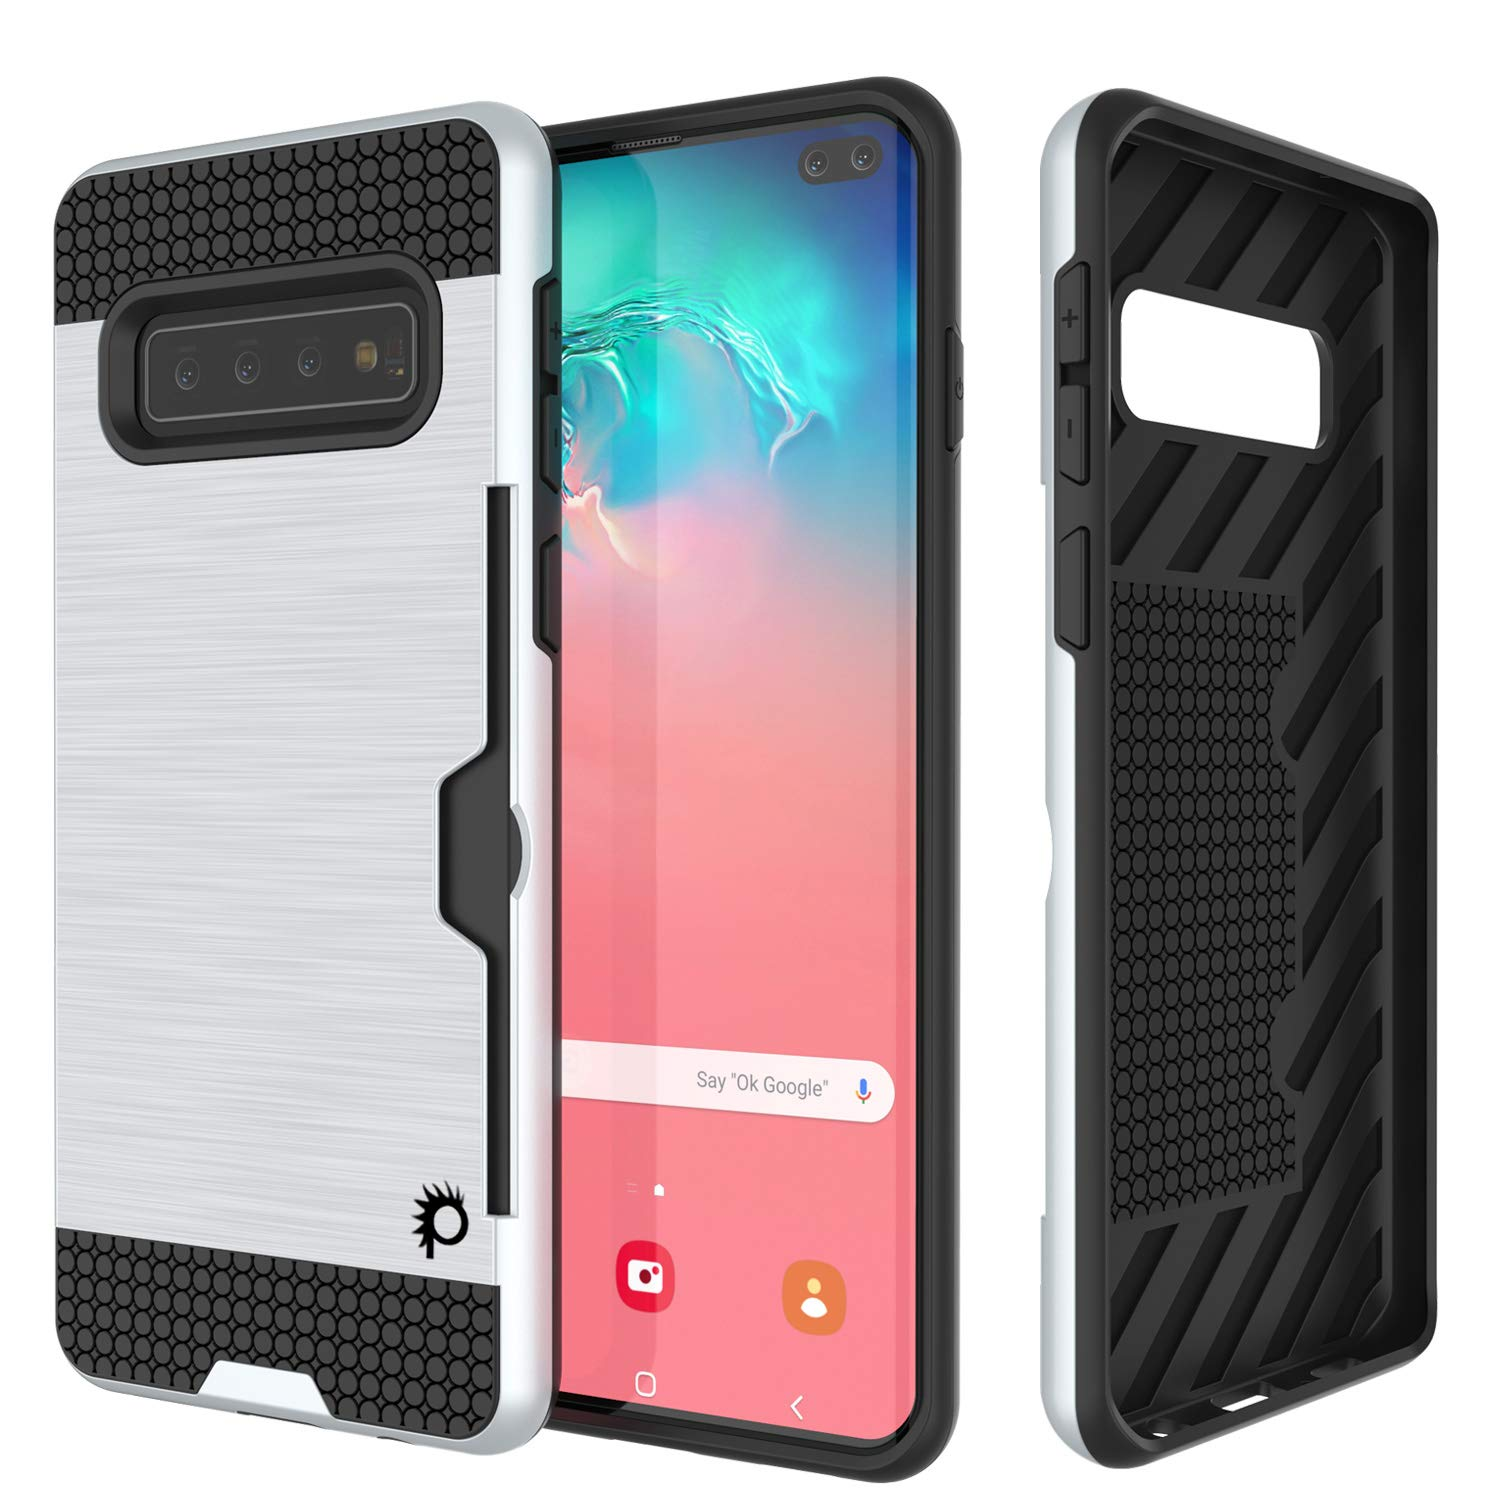 Galaxy S10 Case, PUNKcase [SLOT Series] [Slim Fit] Dual-Layer Armor Cover w/Integrated Anti-Shock System, Credit Card Slot [White]